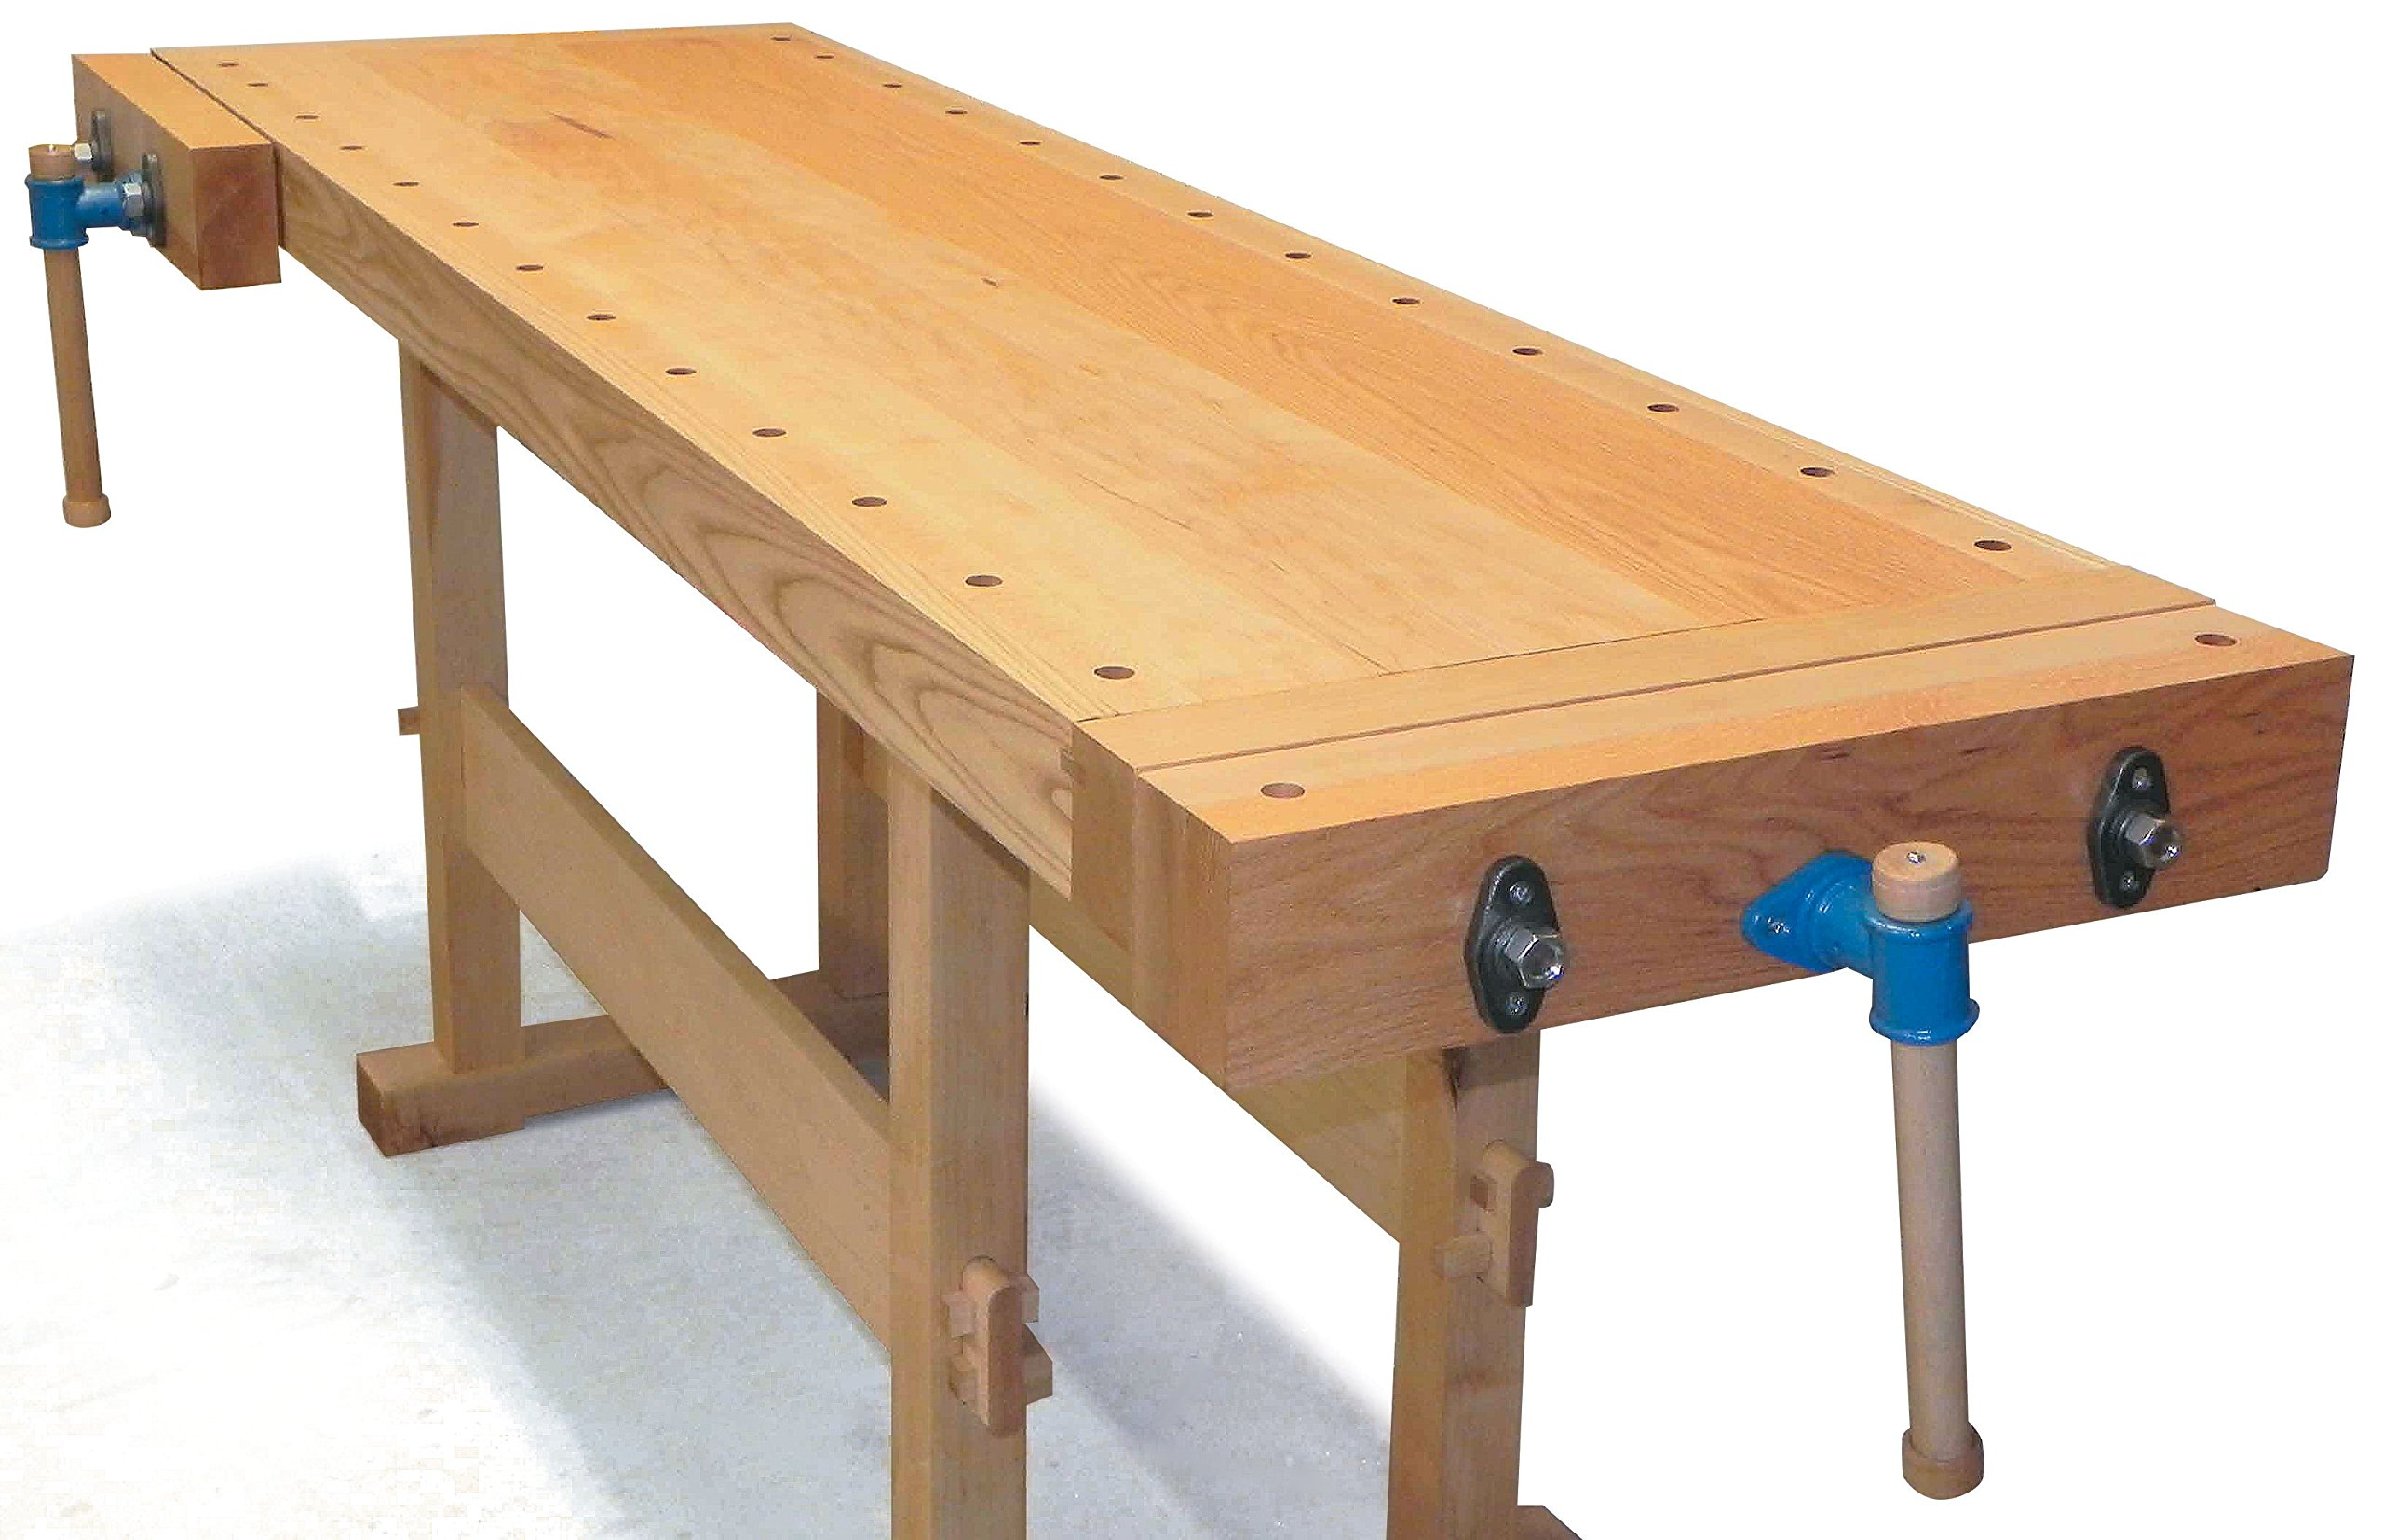 Build-Your-Own Workbench Plan – American Furniture Design